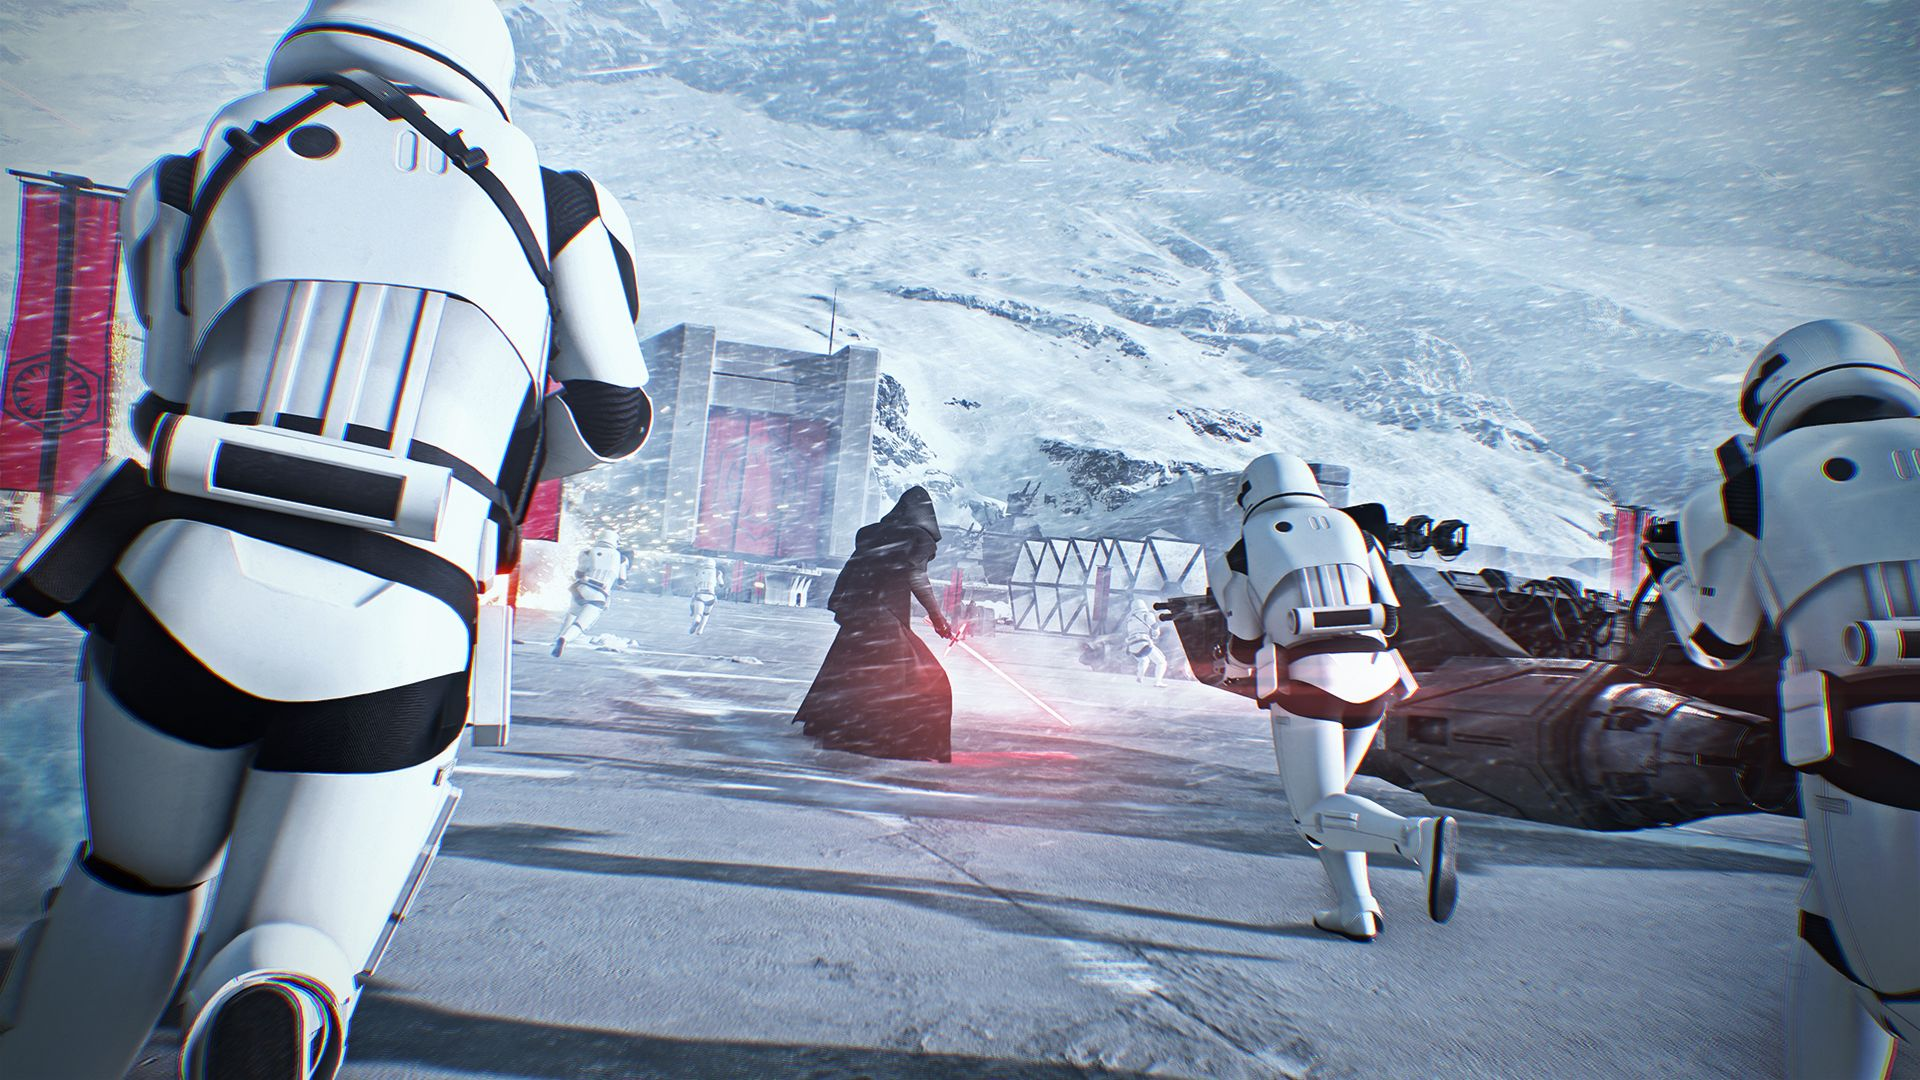 EA digital sale drops Battlefront 2 to $4.50, Titanfall 2 to $5 and Dragon Age: Inquisition to $8 - VG247